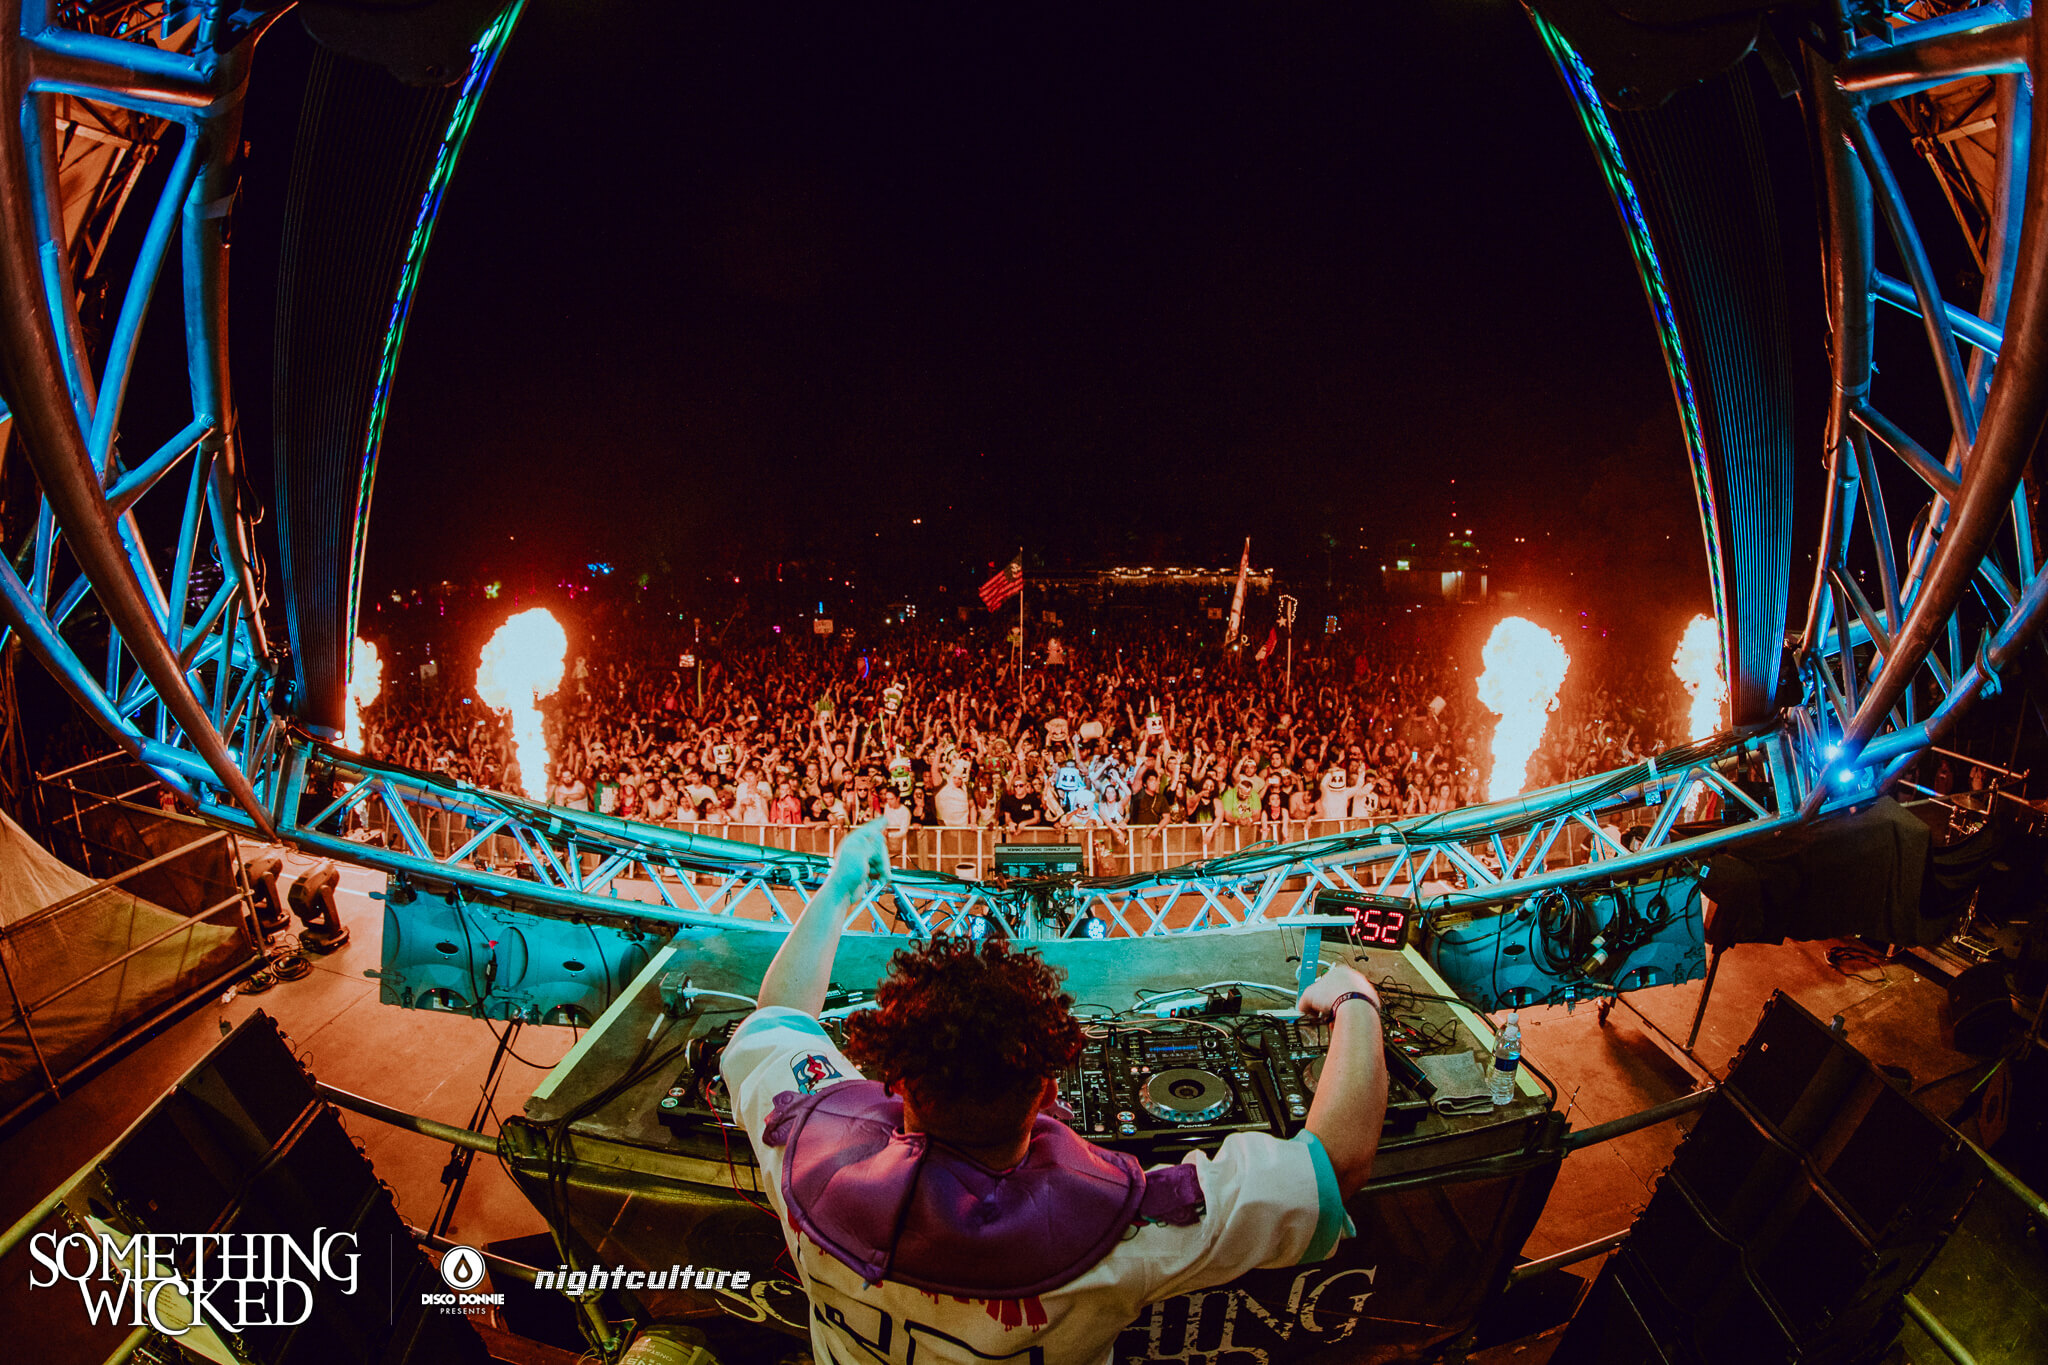 Slushii performing at Something Wicked. Photo by Julian Bajsel.